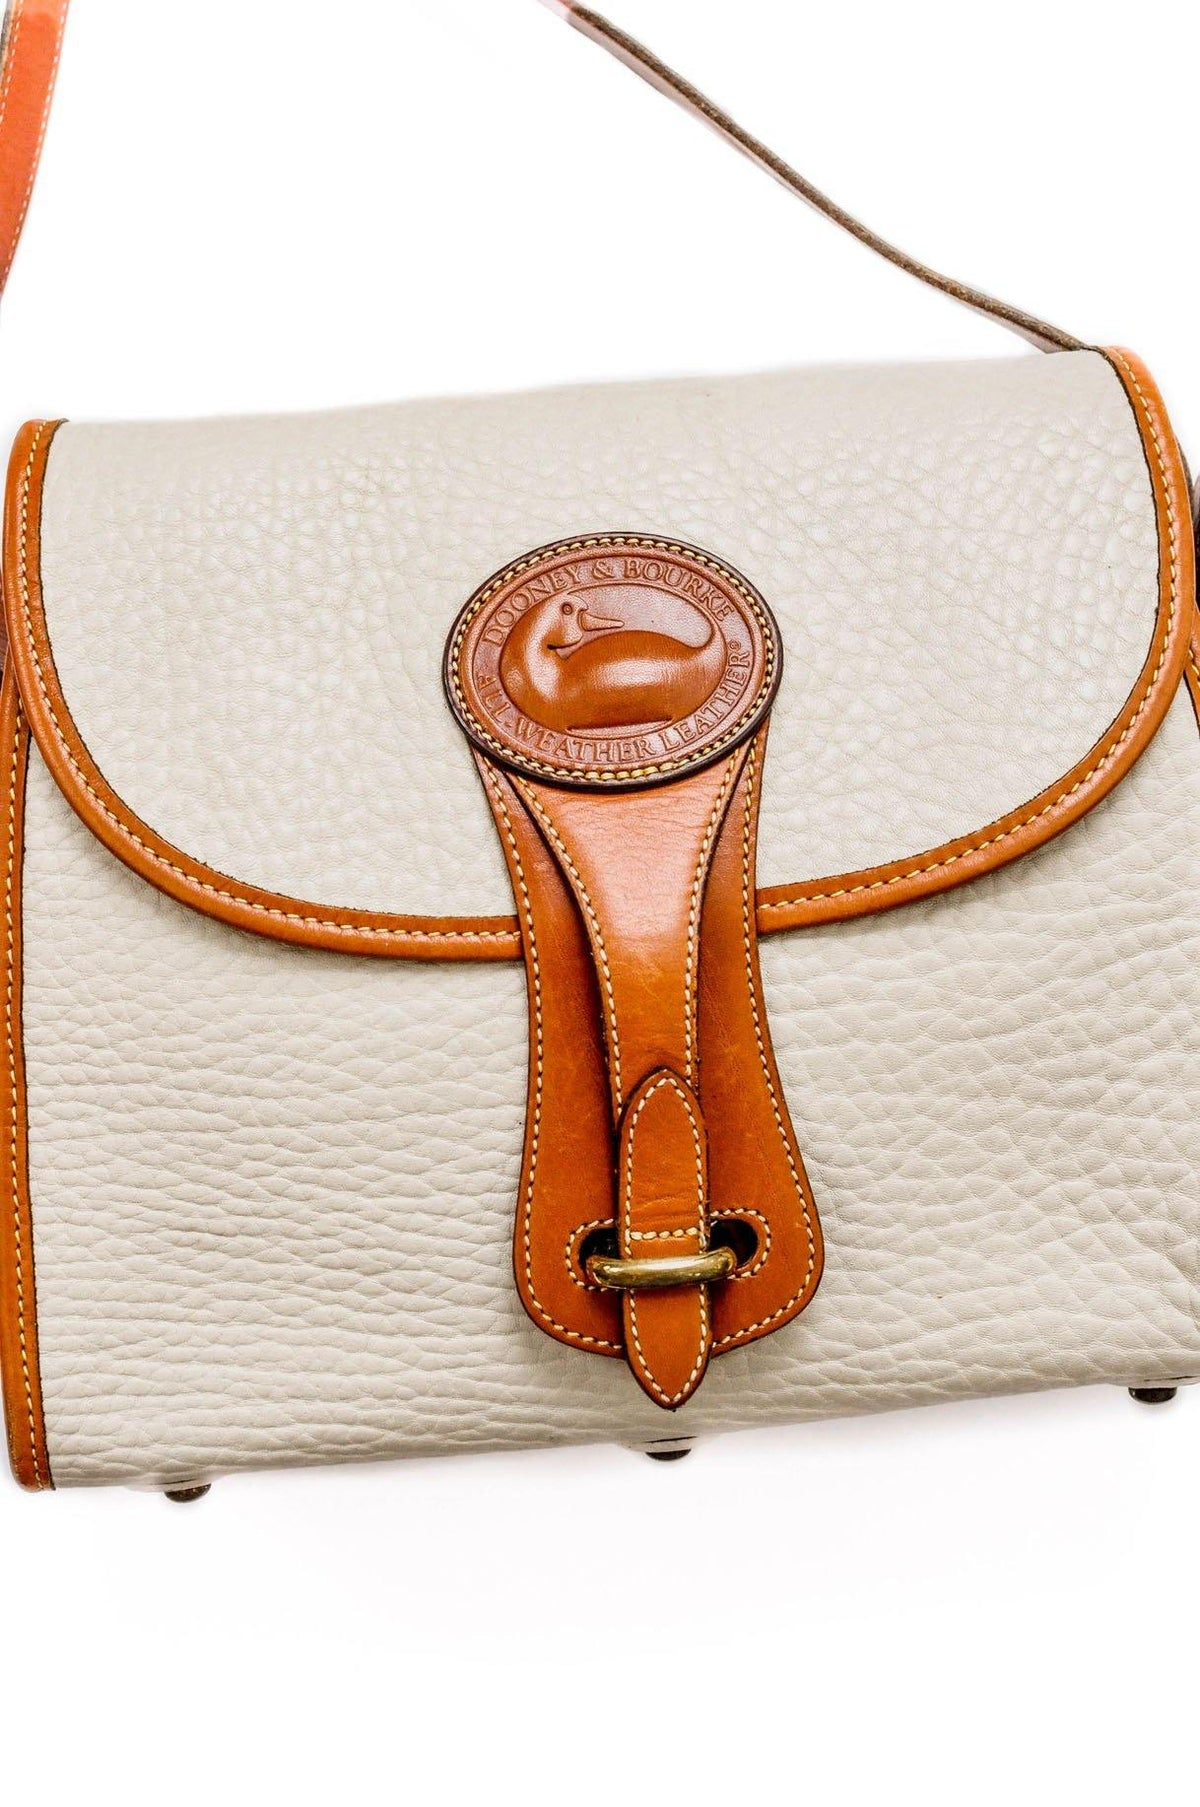 Vintage Dooney & Bourke Leather Crossbody Bag from Sweet and Spark